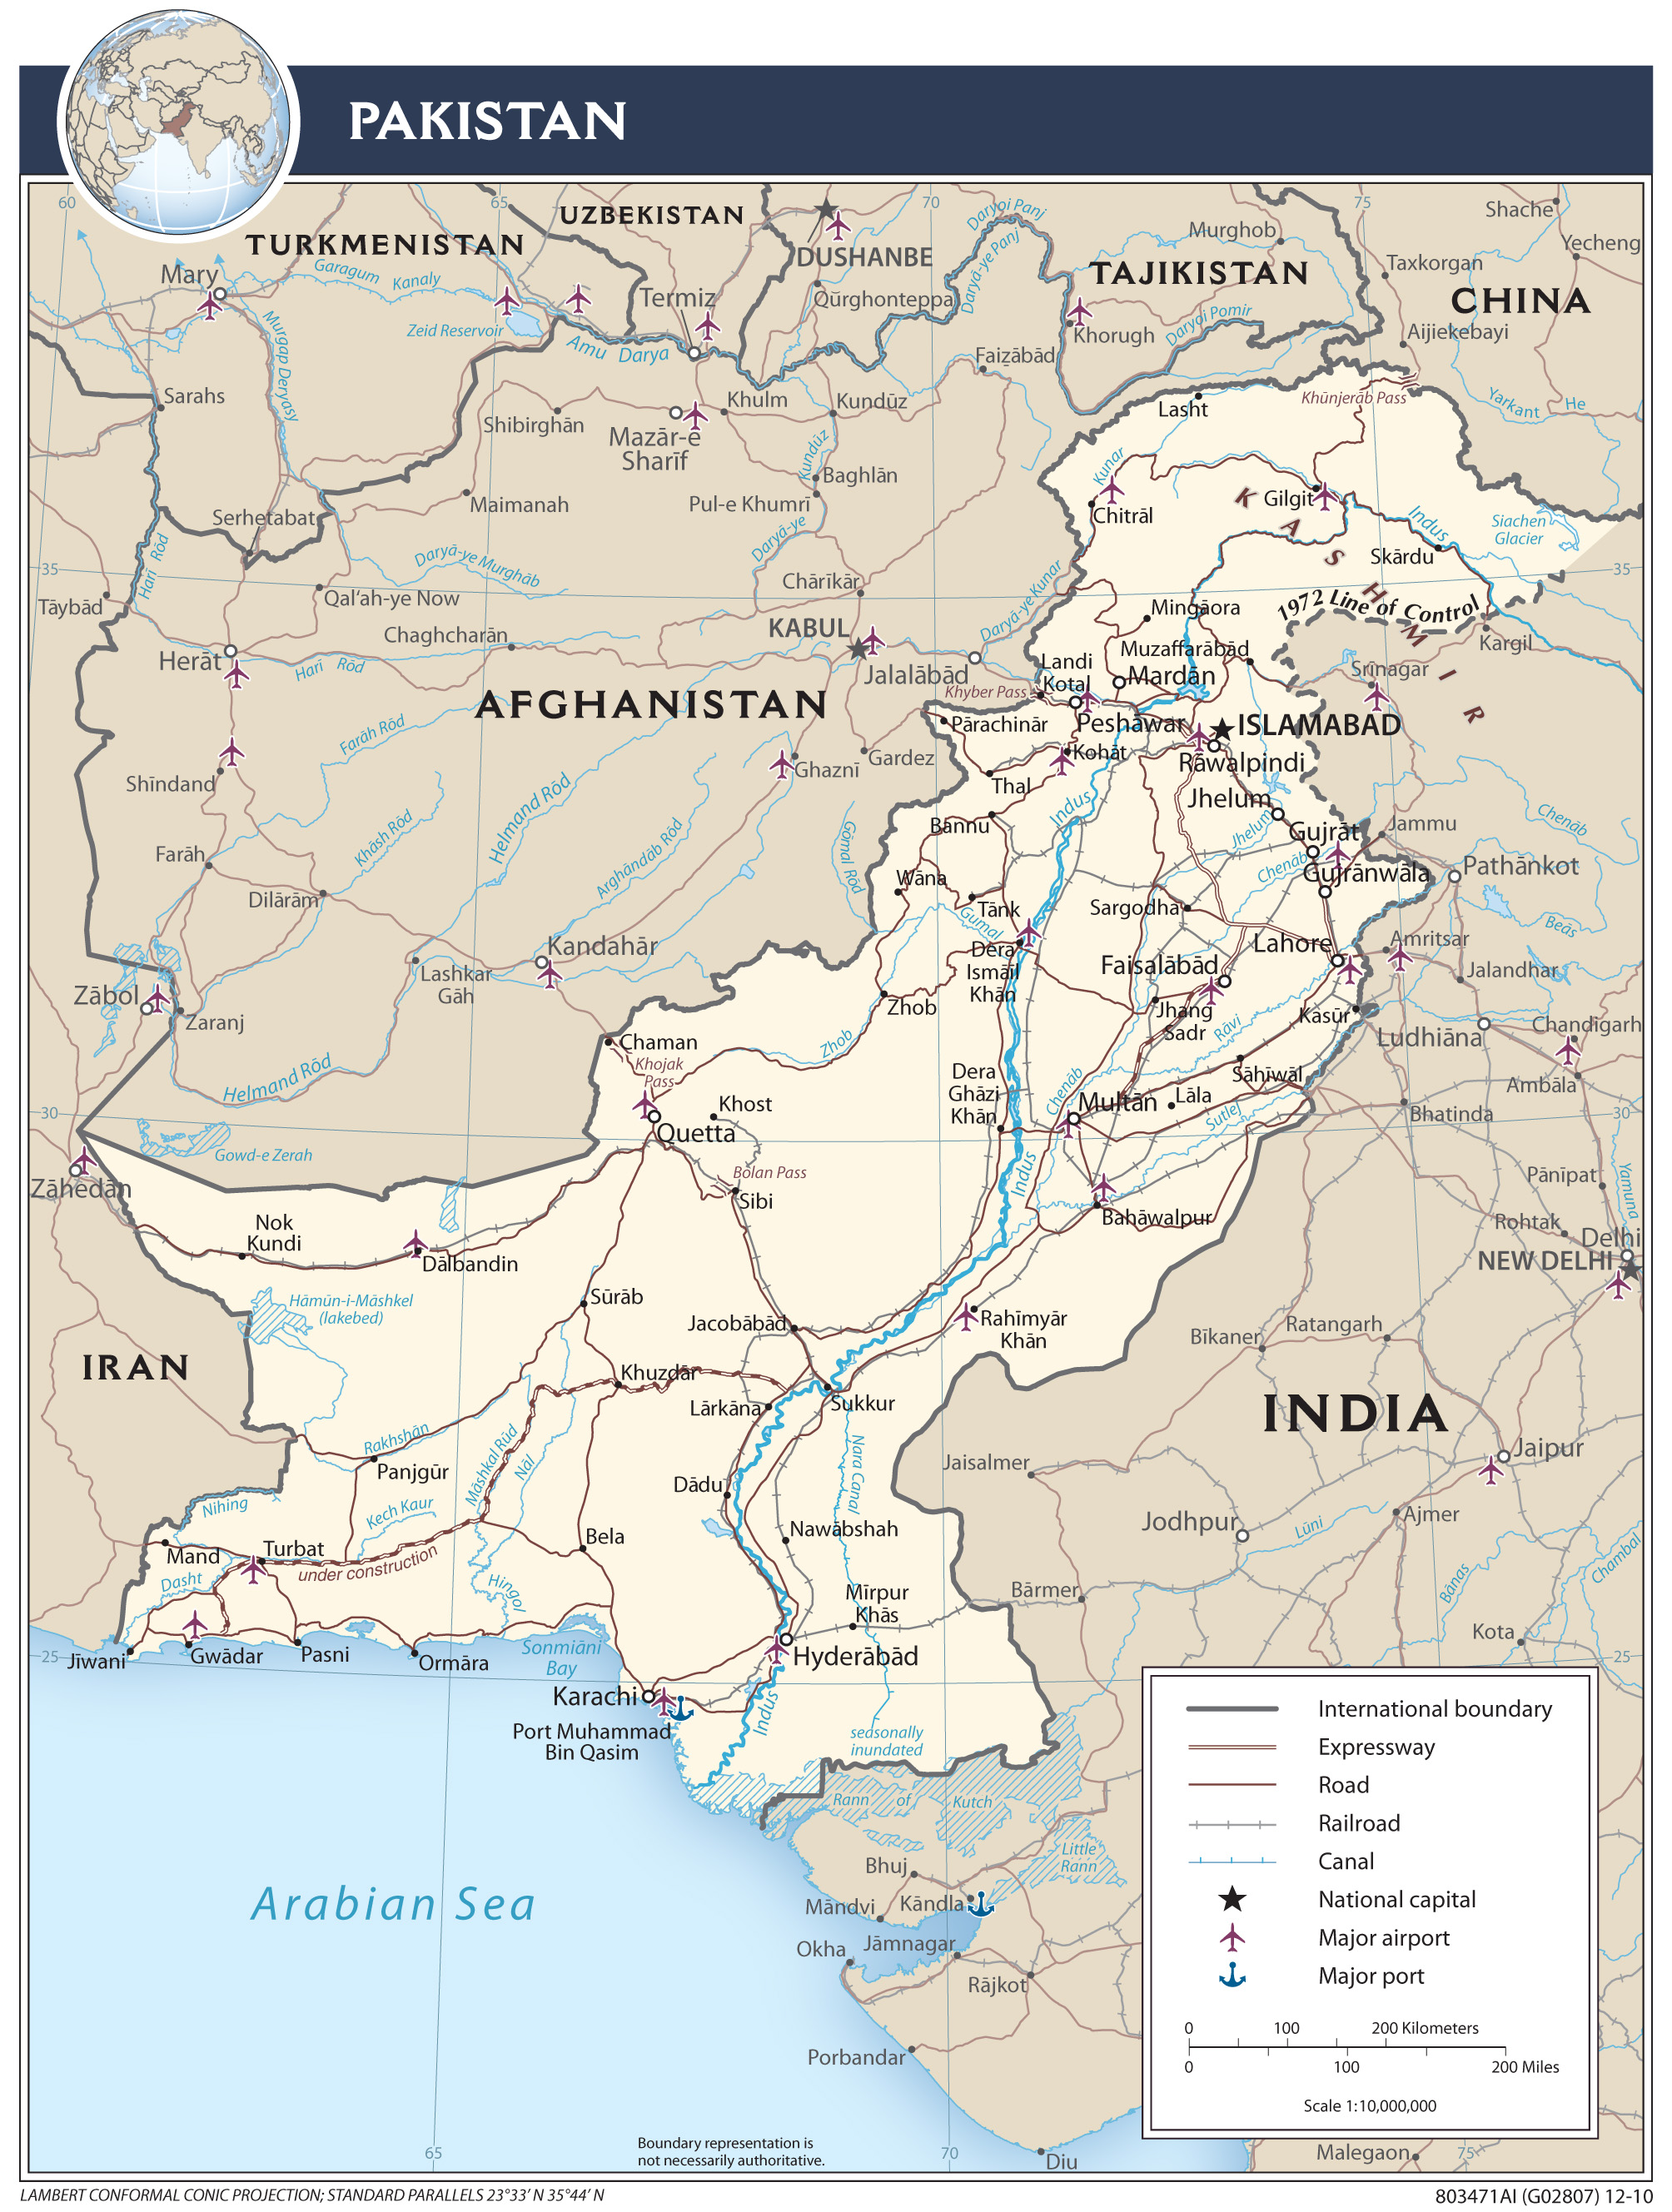 stan Maps - Perry-Castañeda Map Collection - UT Library ... Afghanistan Political Map Of Major Cities on afghanistan climate map, afghanistan area map, afghanistan time zone map, pakistan topographic map, afghanistan rivers map, afghanistan regional command map, afghanistan agriculture map, afghanistan elevation map, afghanistan airports map, afghanistan political map, afghanistan deserts map, afghanistan terrain map, afghanistan provinces map, afghanistan kabul city map, afghanistan continent map, bagram afghanistan map, afghanistan vegetation map, afghanistan flag map, afghanistan languages map, afghanistan culture map,